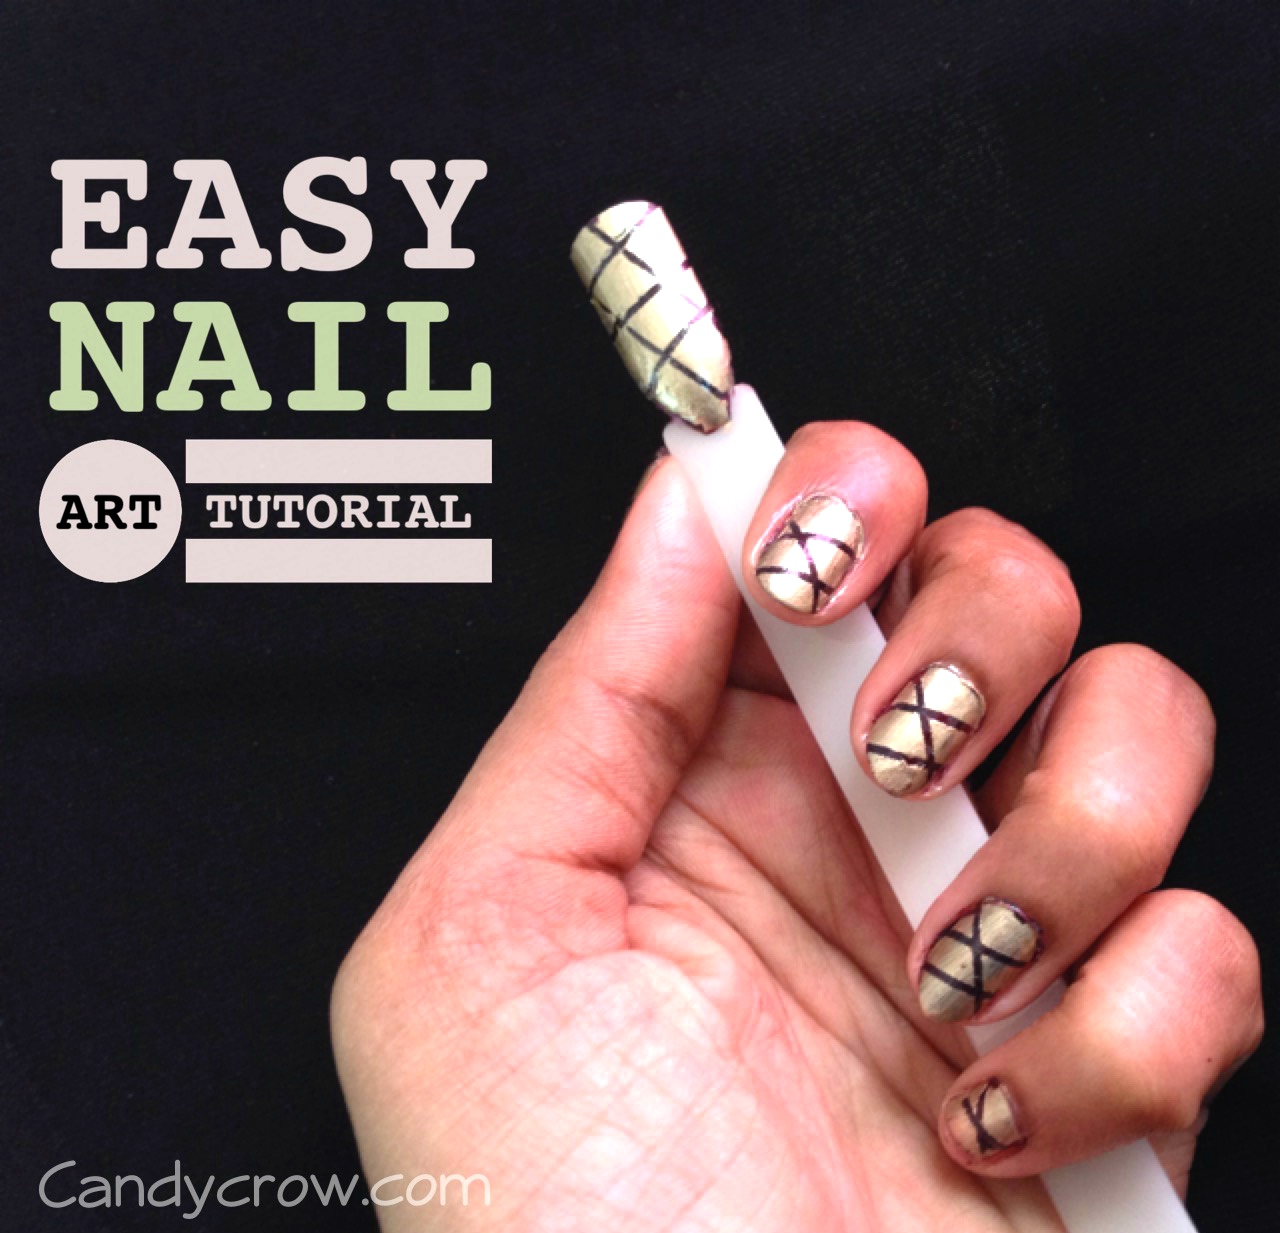 Easy nail art tutorial with stripping nail tape candy crow top easy nail art tutorial with stripping nail tape prinsesfo Image collections